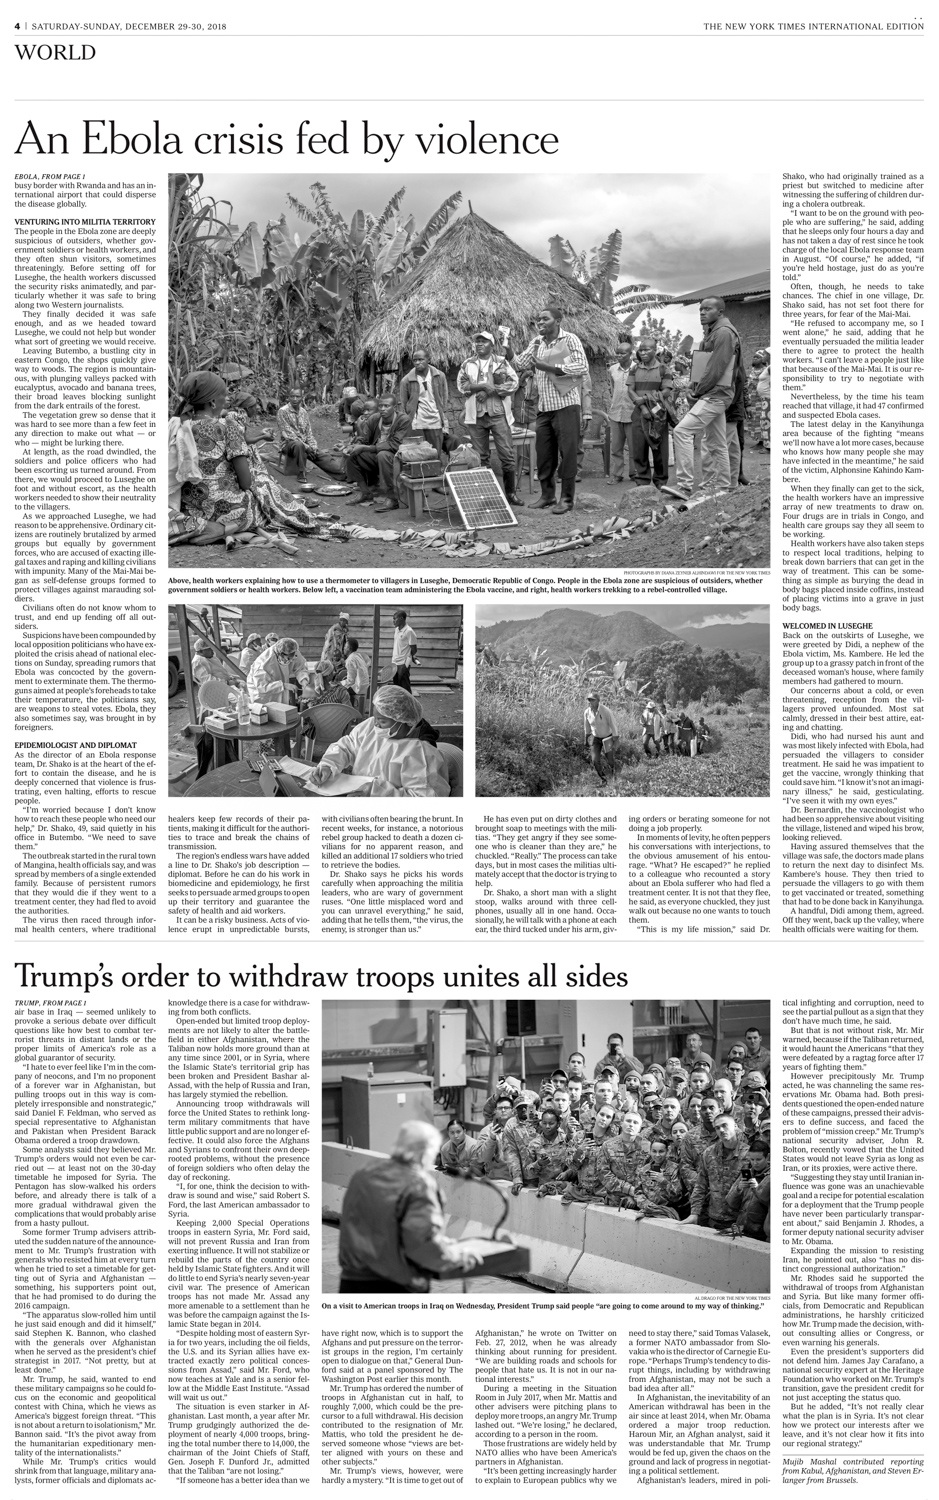 Diana Zeyneb Alhindawi_2018_12_29_New York Times international edition_page A4_ebola congo drc_lower res.jpg